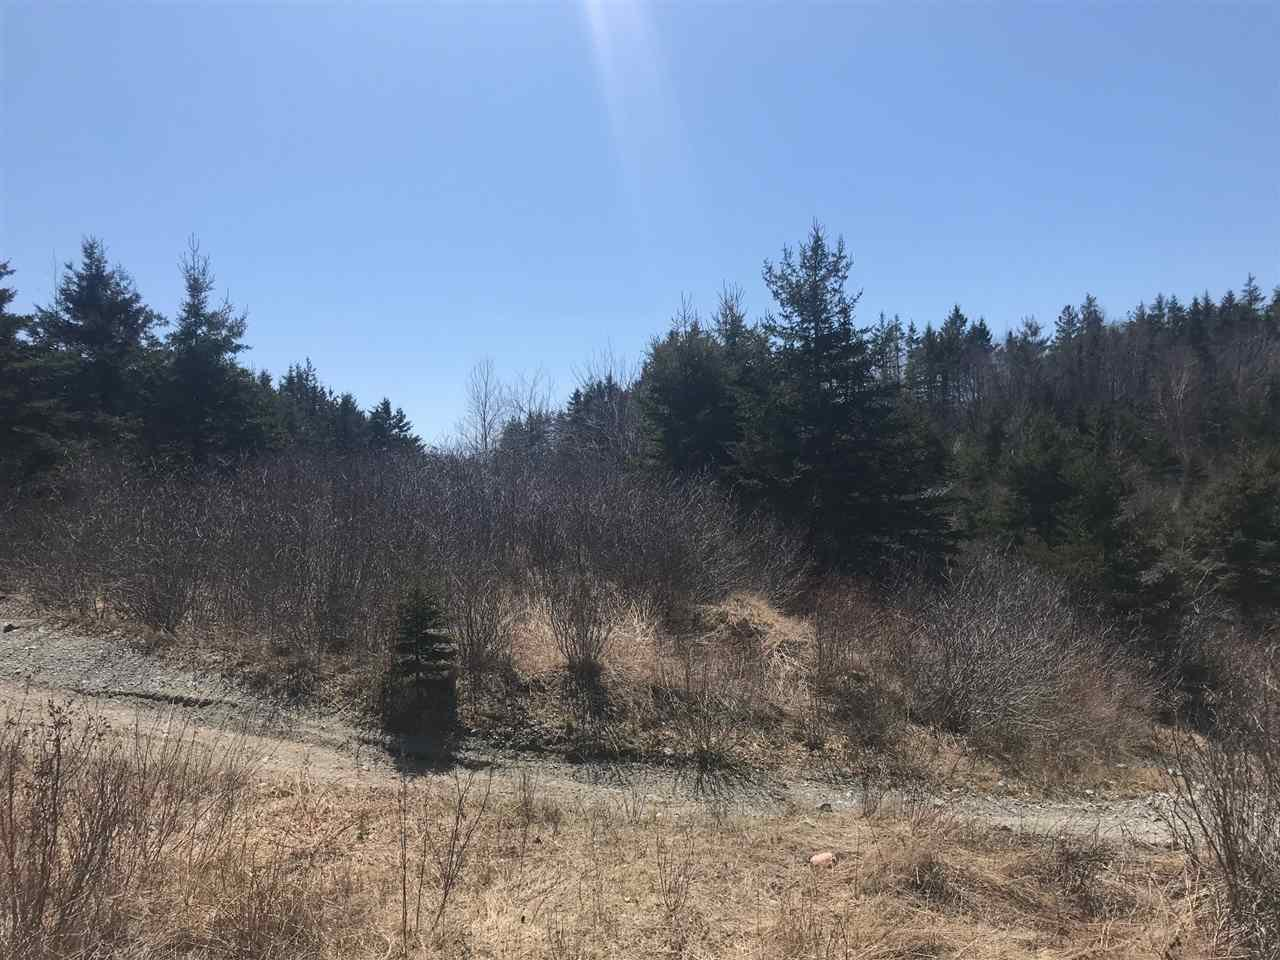 Photo 6: Photos: 11574 Highway 7 in Lake Charlotte: 35-Halifax County East Vacant Land for sale (Halifax-Dartmouth)  : MLS®# 201927372